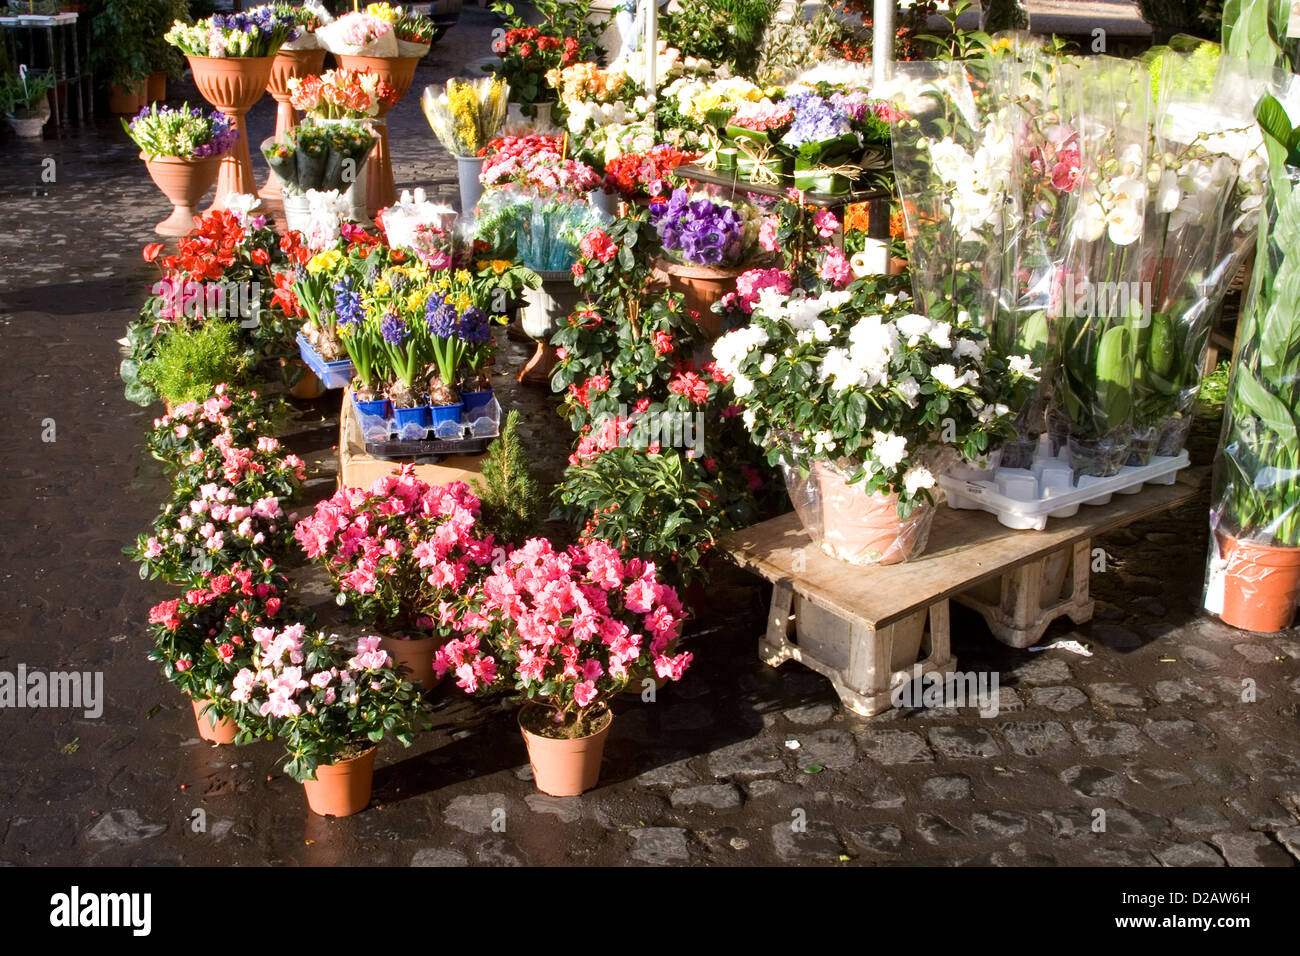 Street flower stand - Stock Image